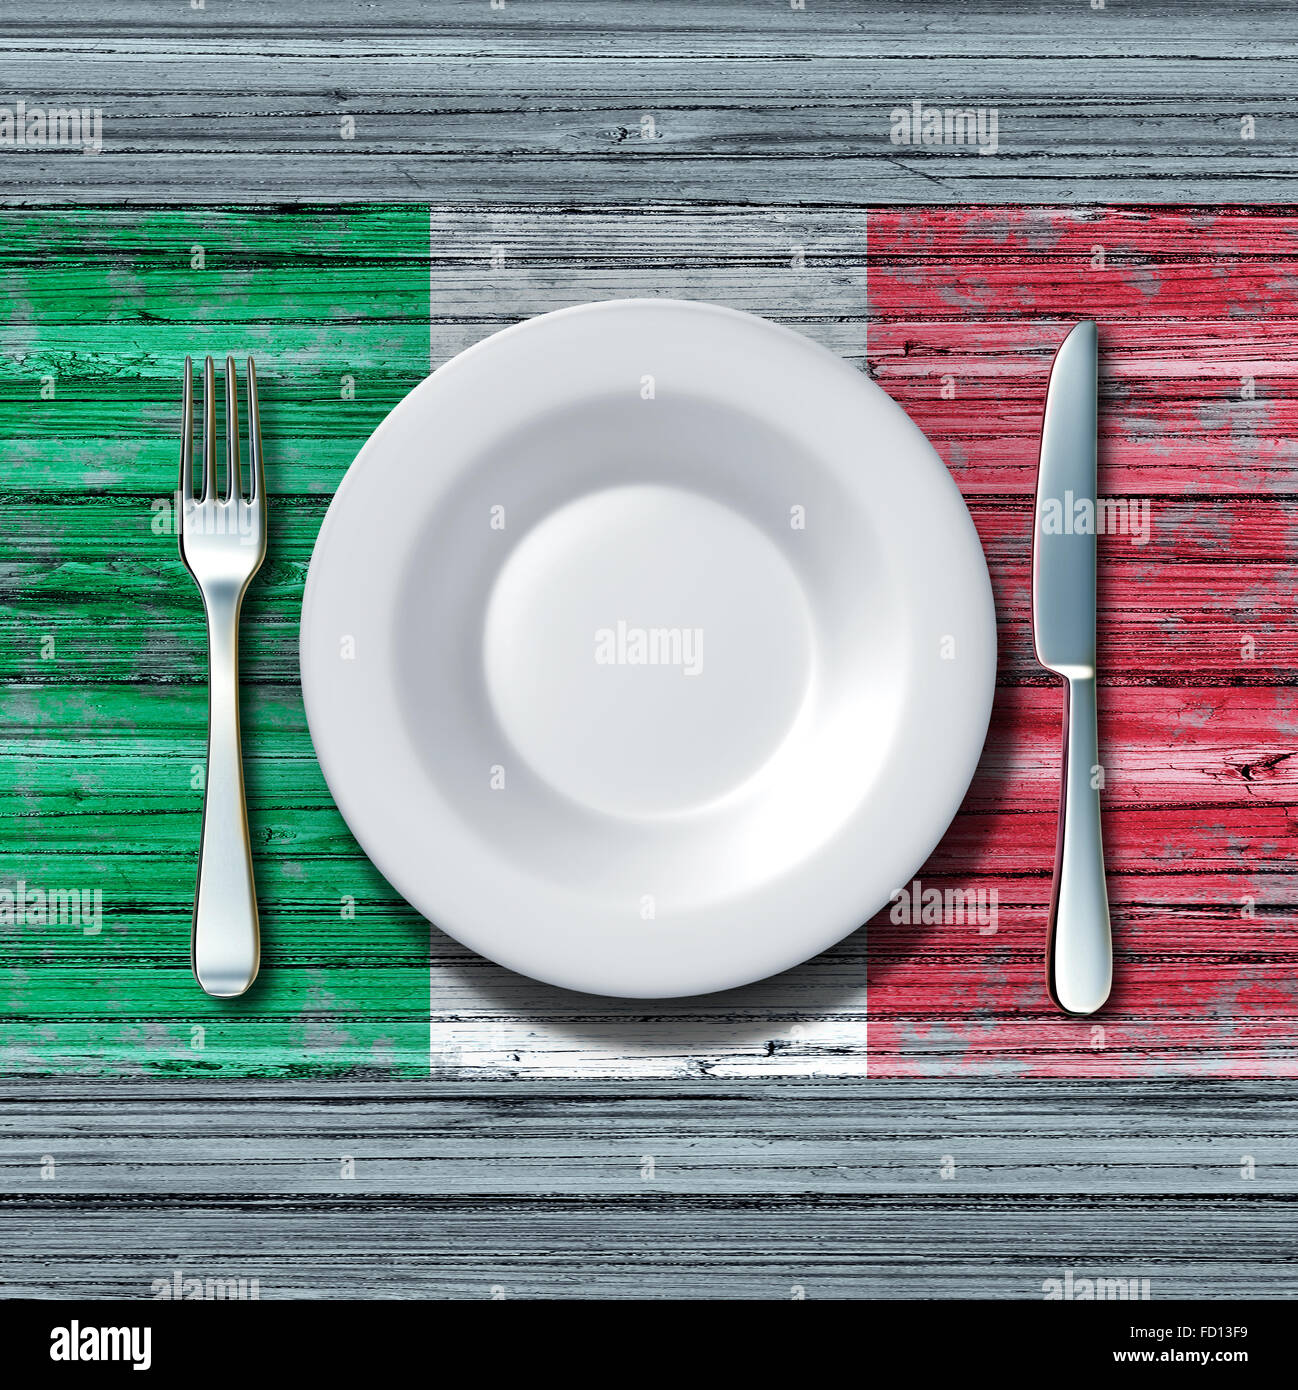 Italian cuisine food concept as a place setting with knife and fork on an old rustic wood table with a symbol of - Stock Image